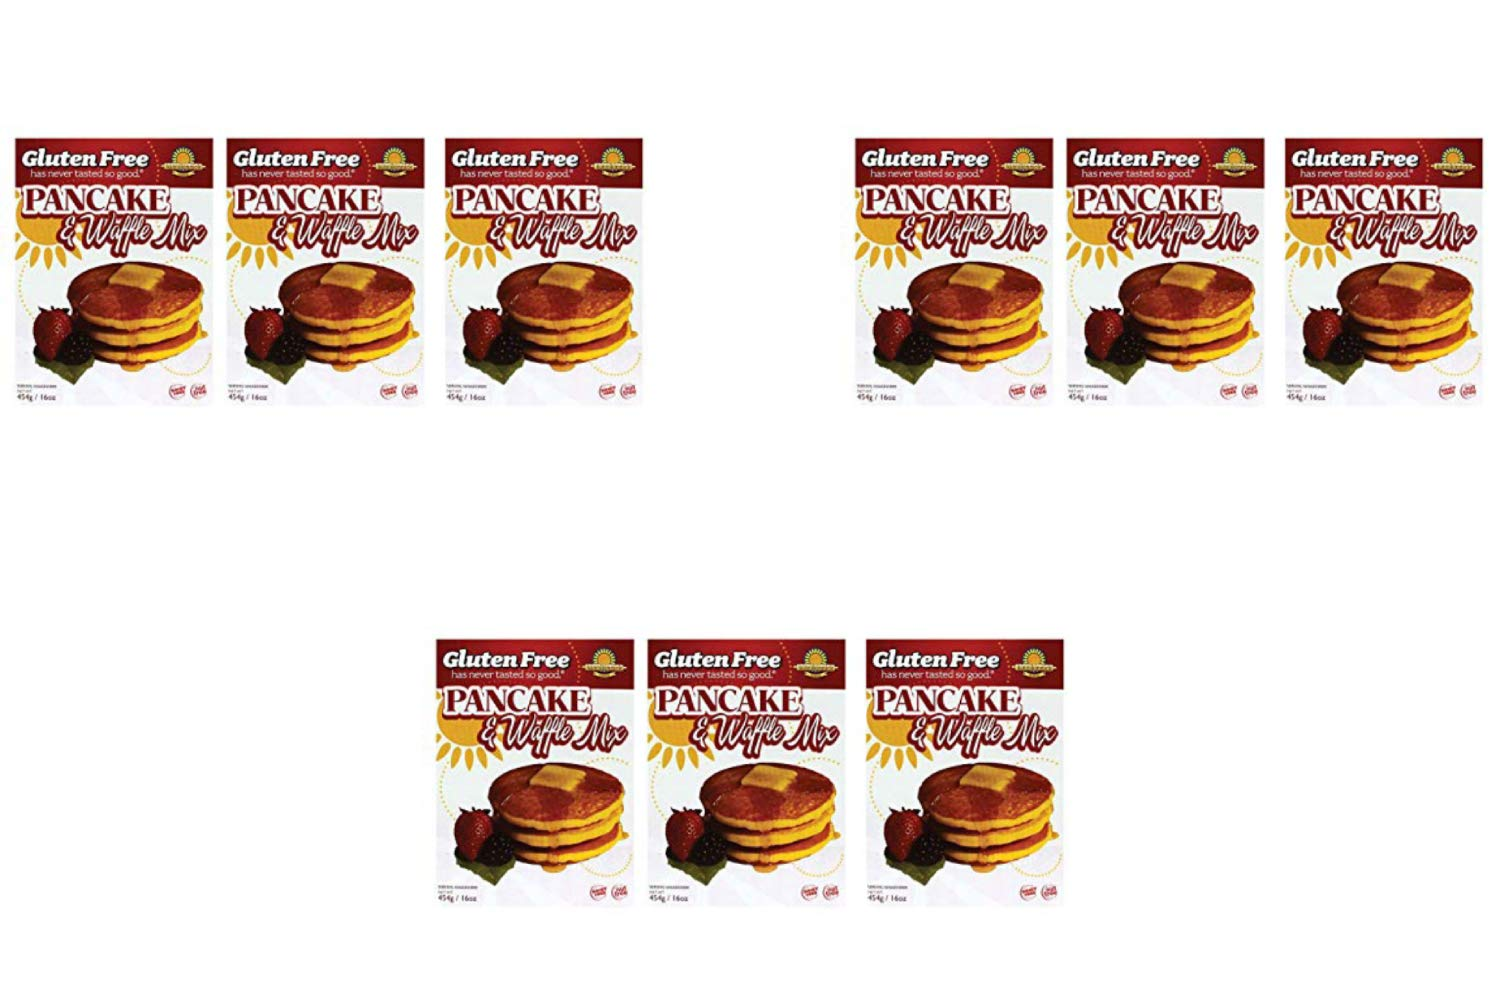 Amazon.com : Kinnikinnick | Gluten Free Pancake & Waffle Mix 16 Oz [3 Count] (2 Pack) : Grocery & Gourmet Food